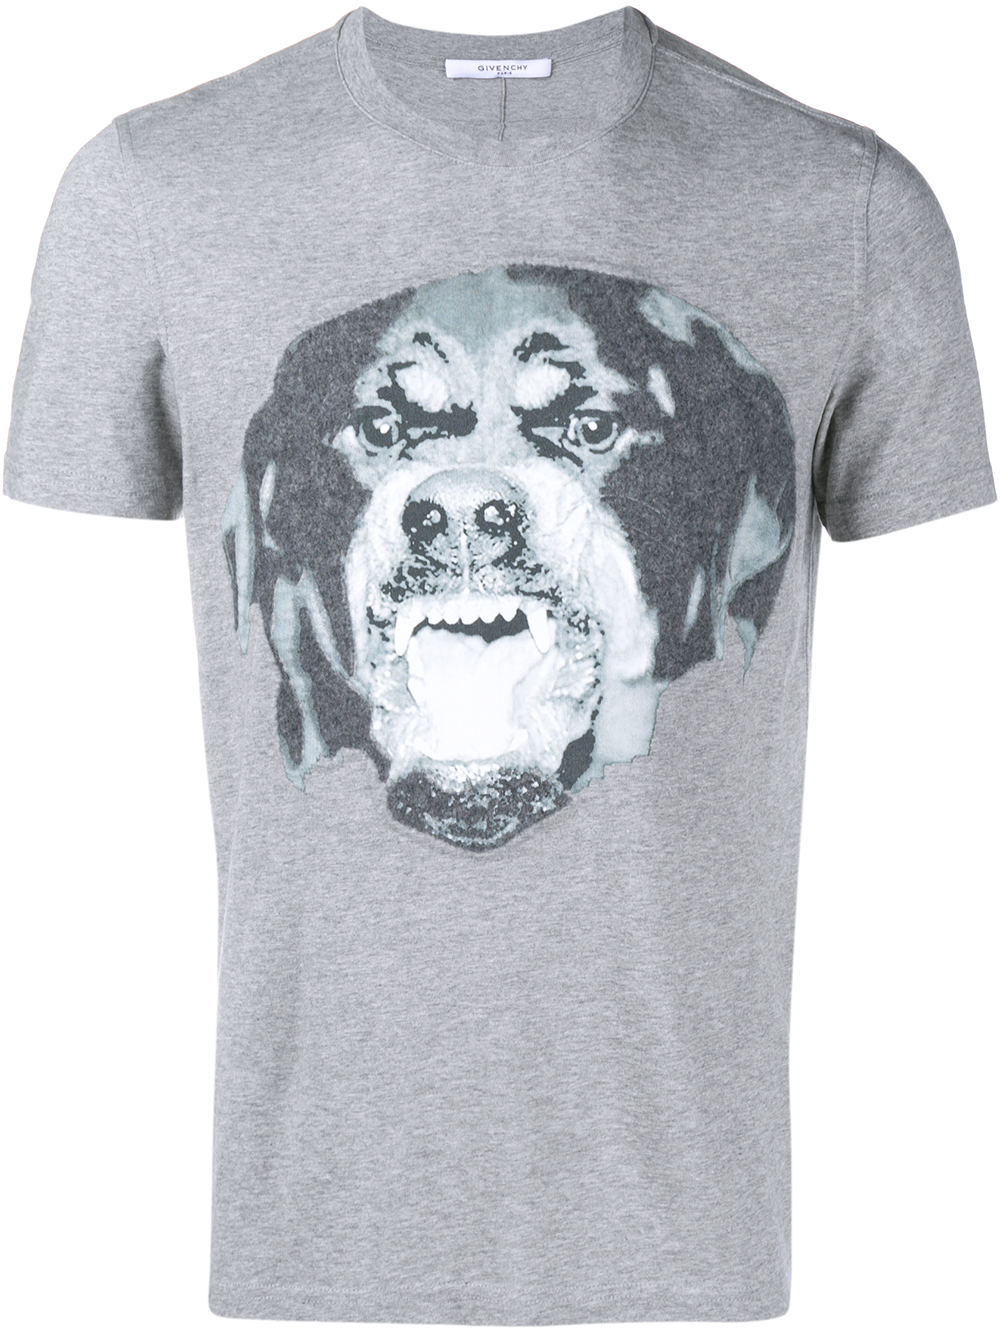 givenchy 39 rottweiler 39 graphic t shirt in gray lyst. Black Bedroom Furniture Sets. Home Design Ideas